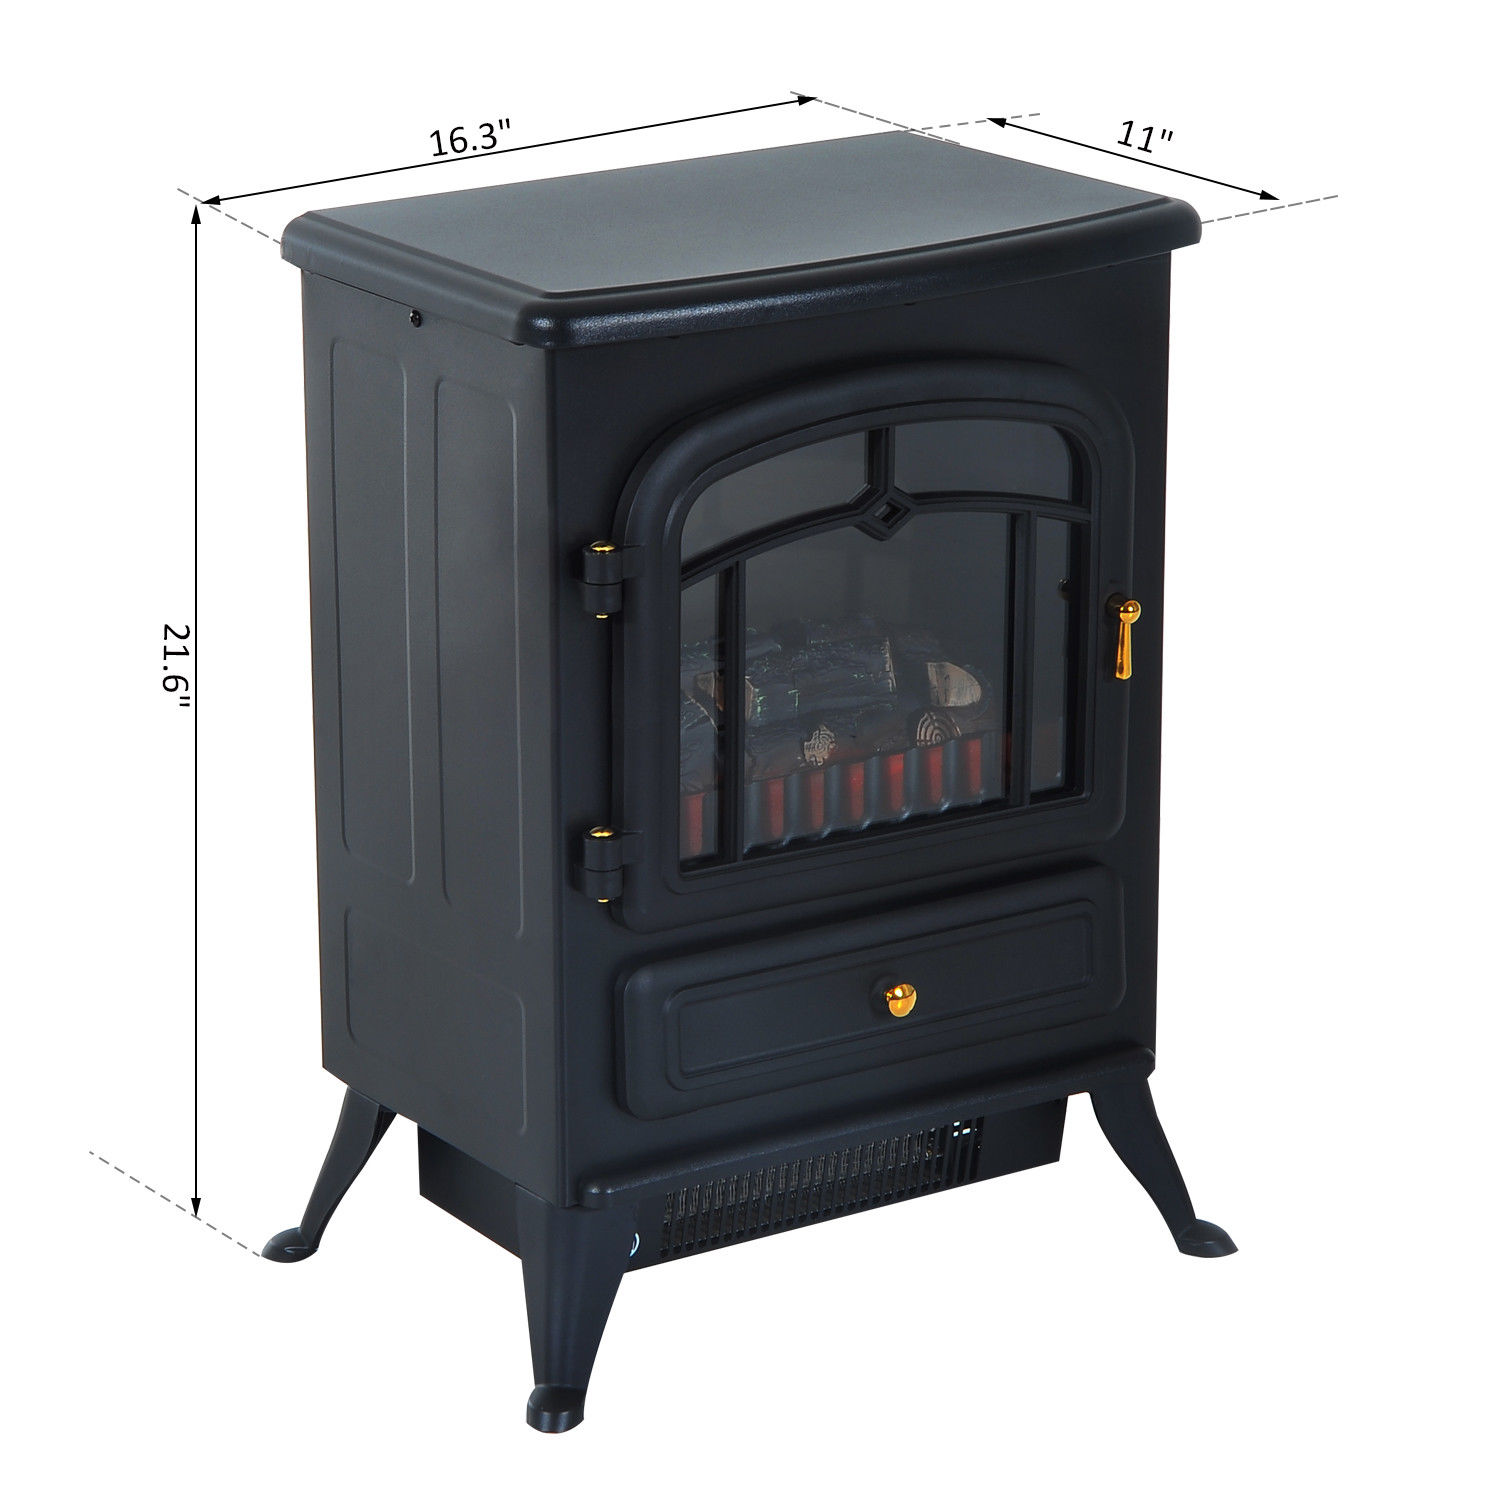 HOMCOM-750-1500W-Portable-Electric-Fireplace-Stove-Heater-Adjustable-LED-Flames thumbnail 3